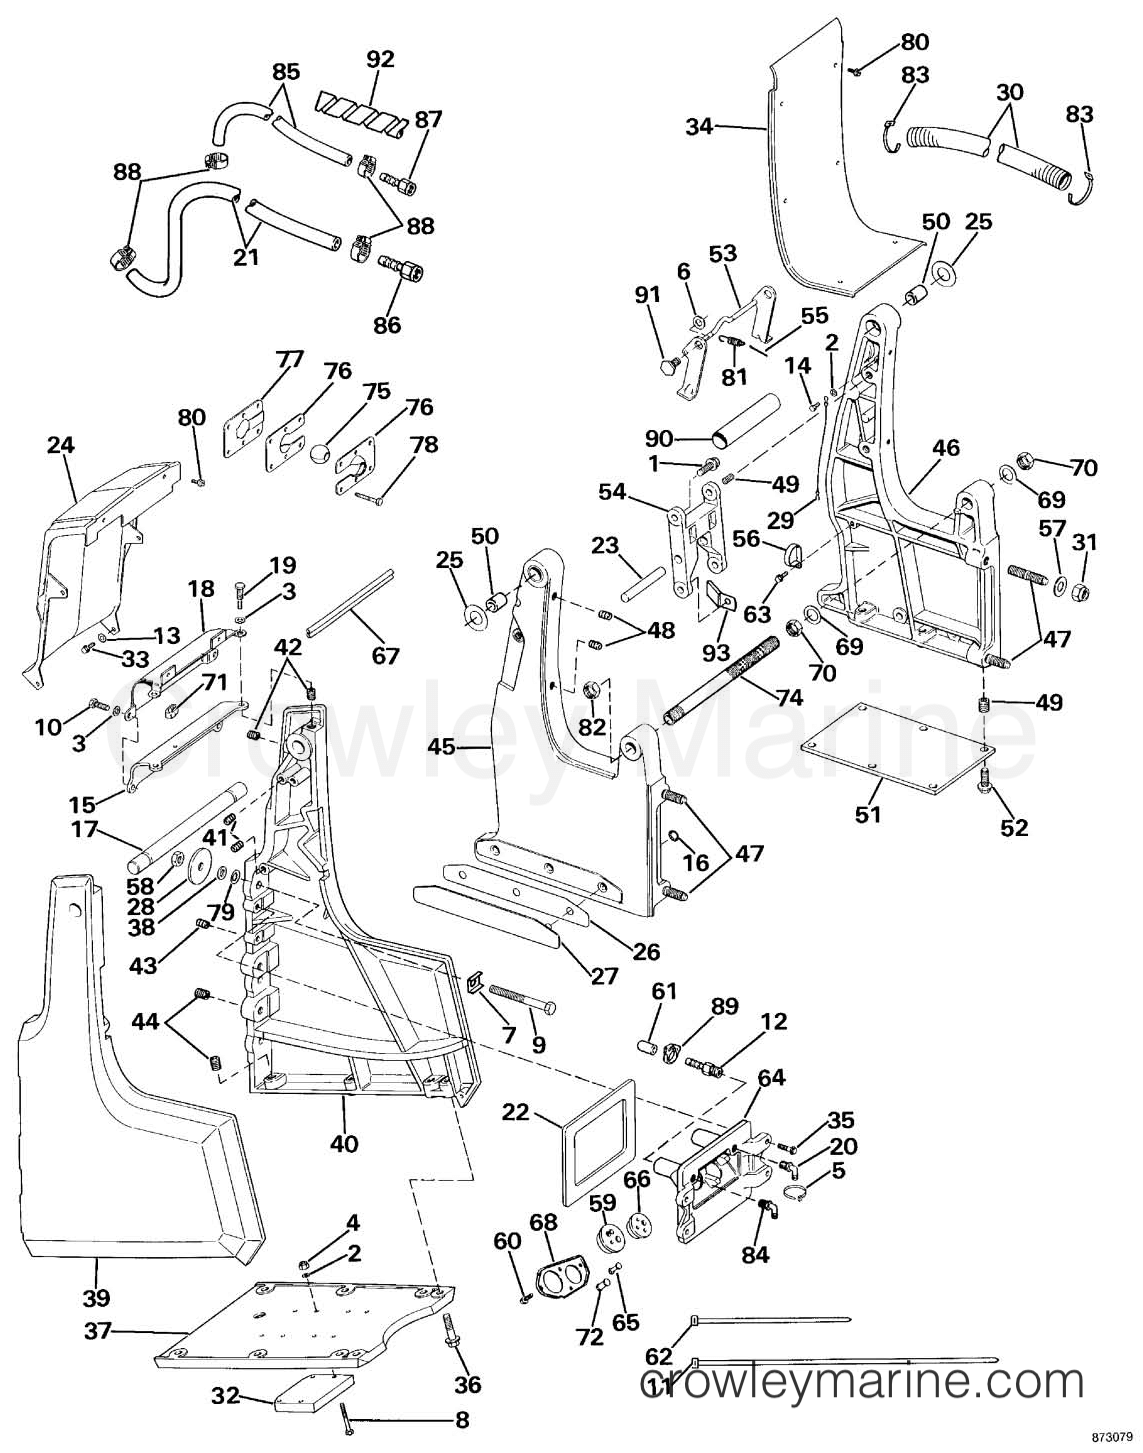 Omc Sea Drive Wiring Diagram Trusted Diagrams Transom Bracket Assembly Mechanical Steering 1988 1972 50 Hp Evinrude